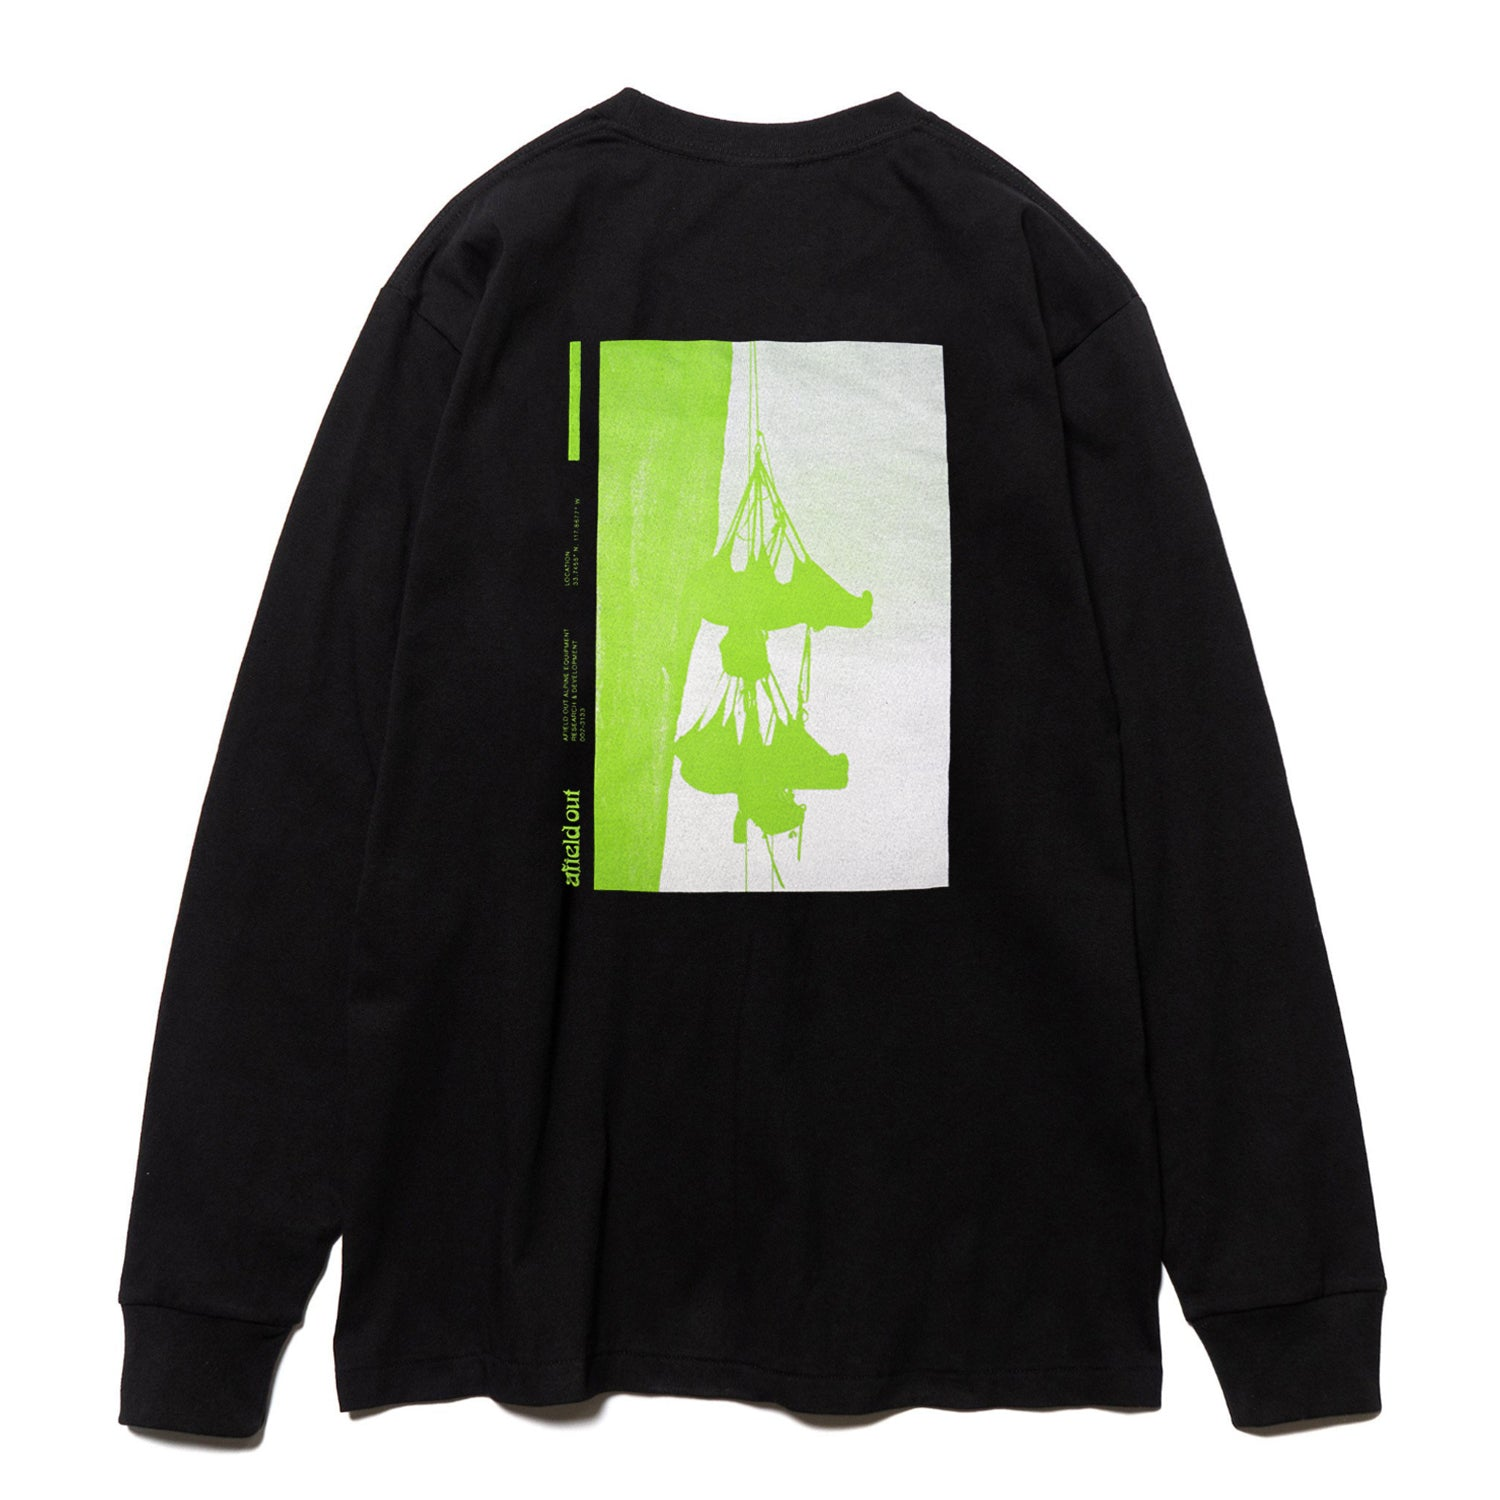 Black Alp Research L/S T-Shirt